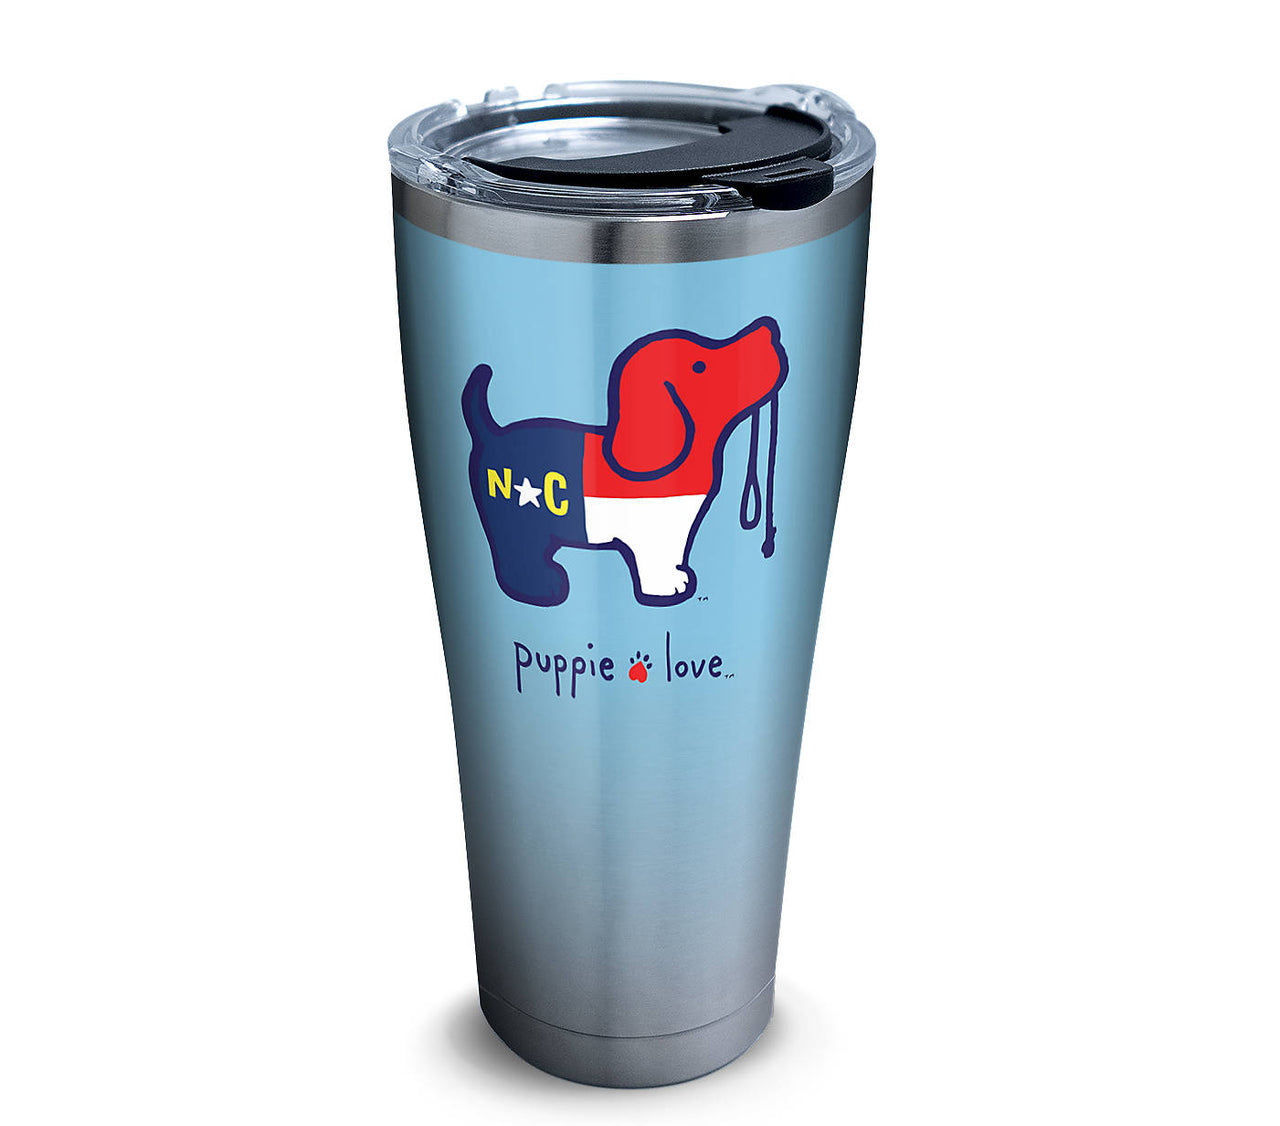 NORTH CAROLINA PUP 30 OZ STAINLESS - Puppie Love